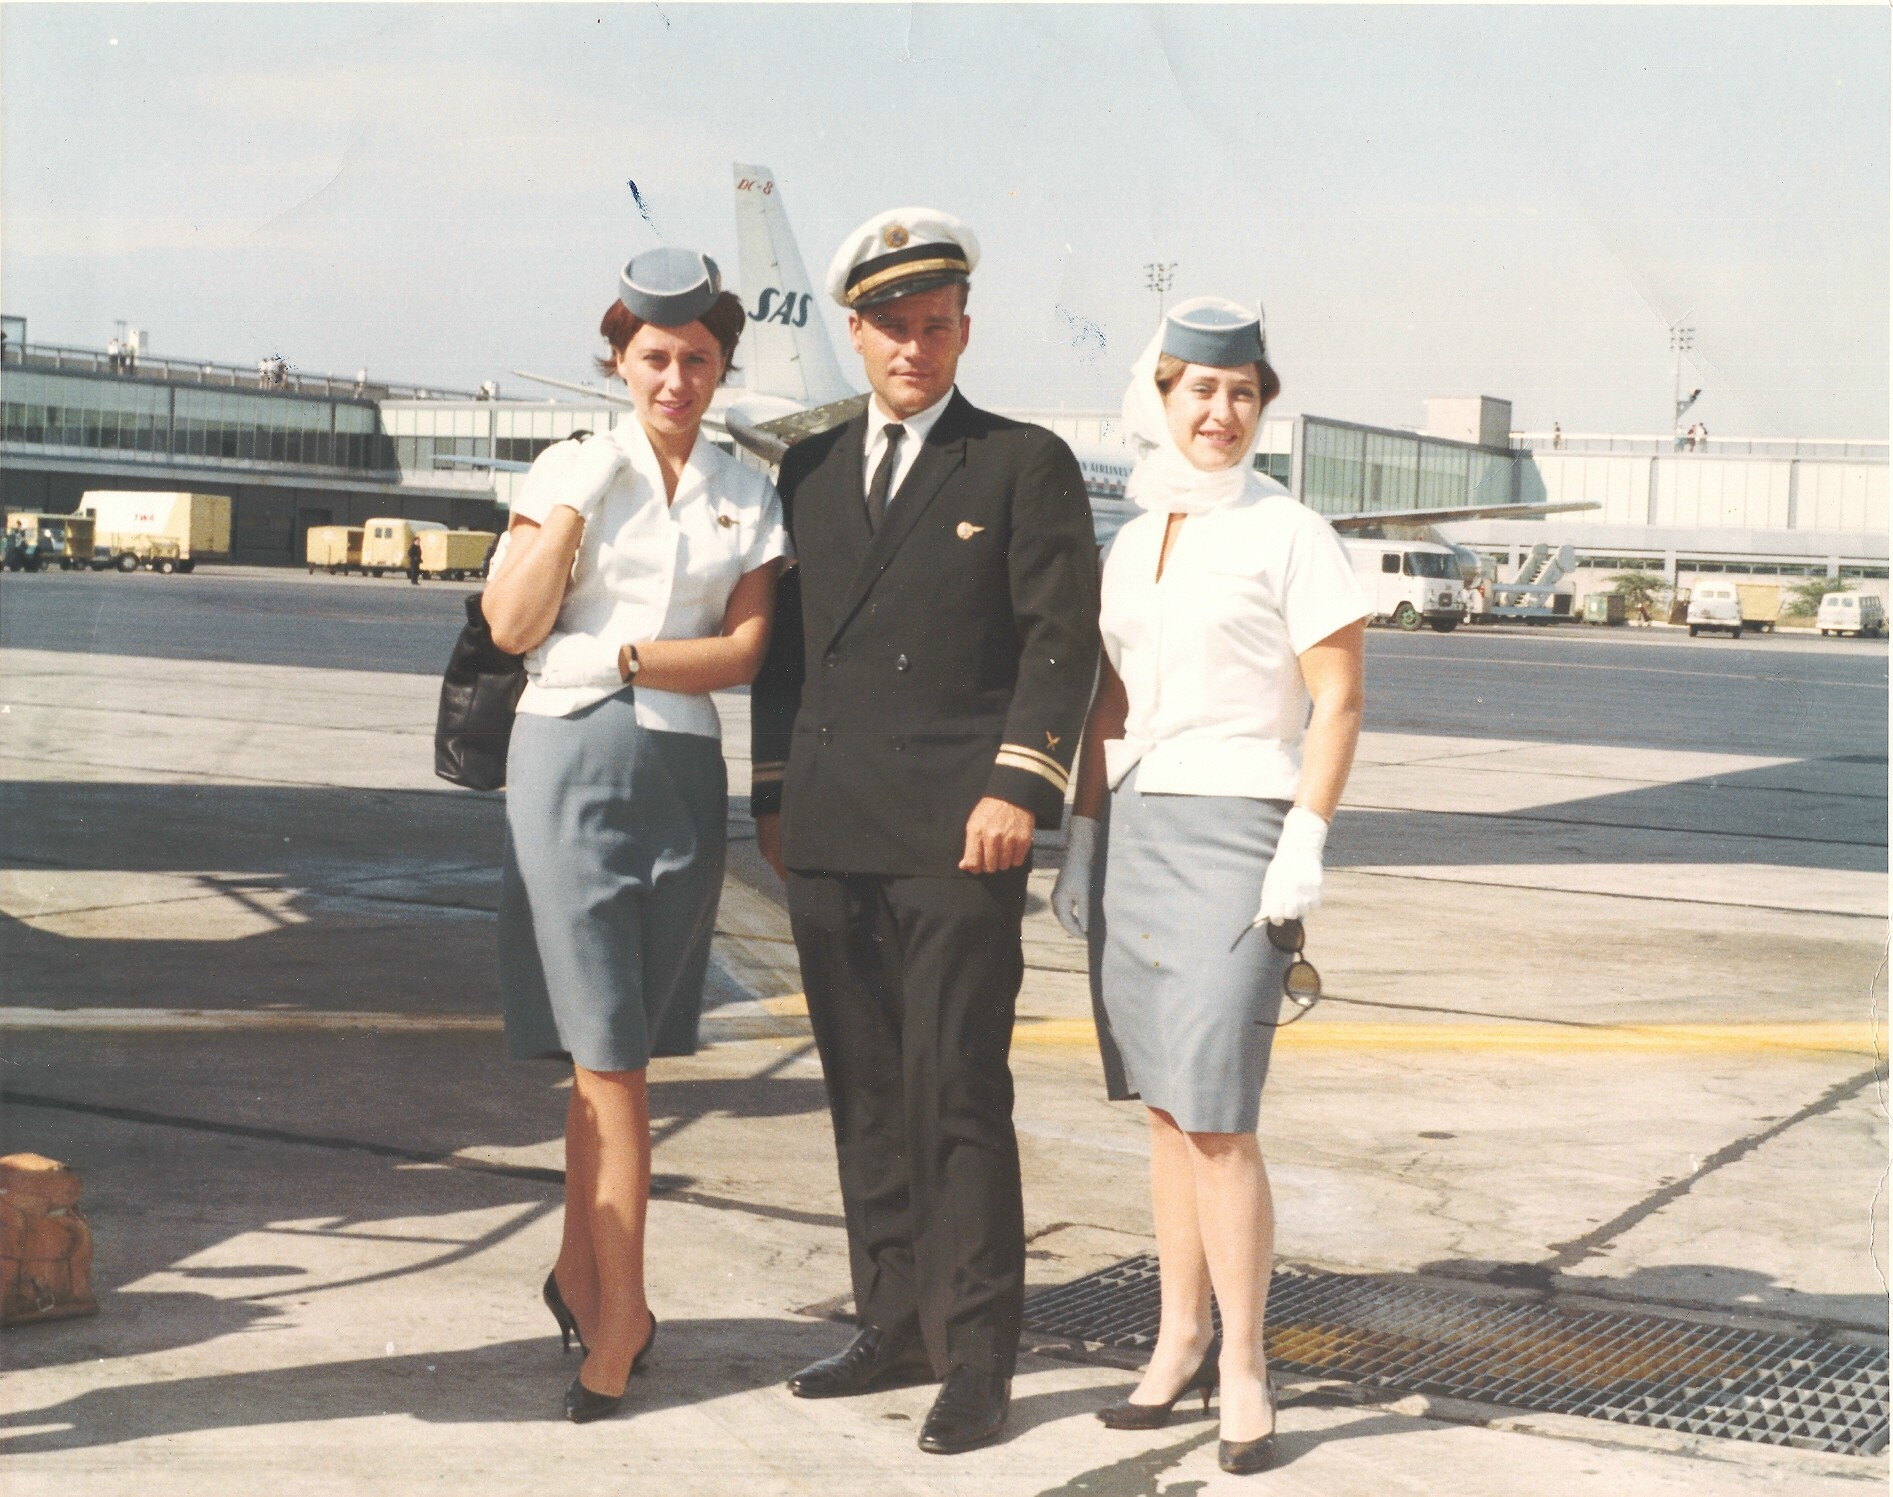 1959 Purser Ray LeDour poses with two stewardesses at New York Idlewild Airport.